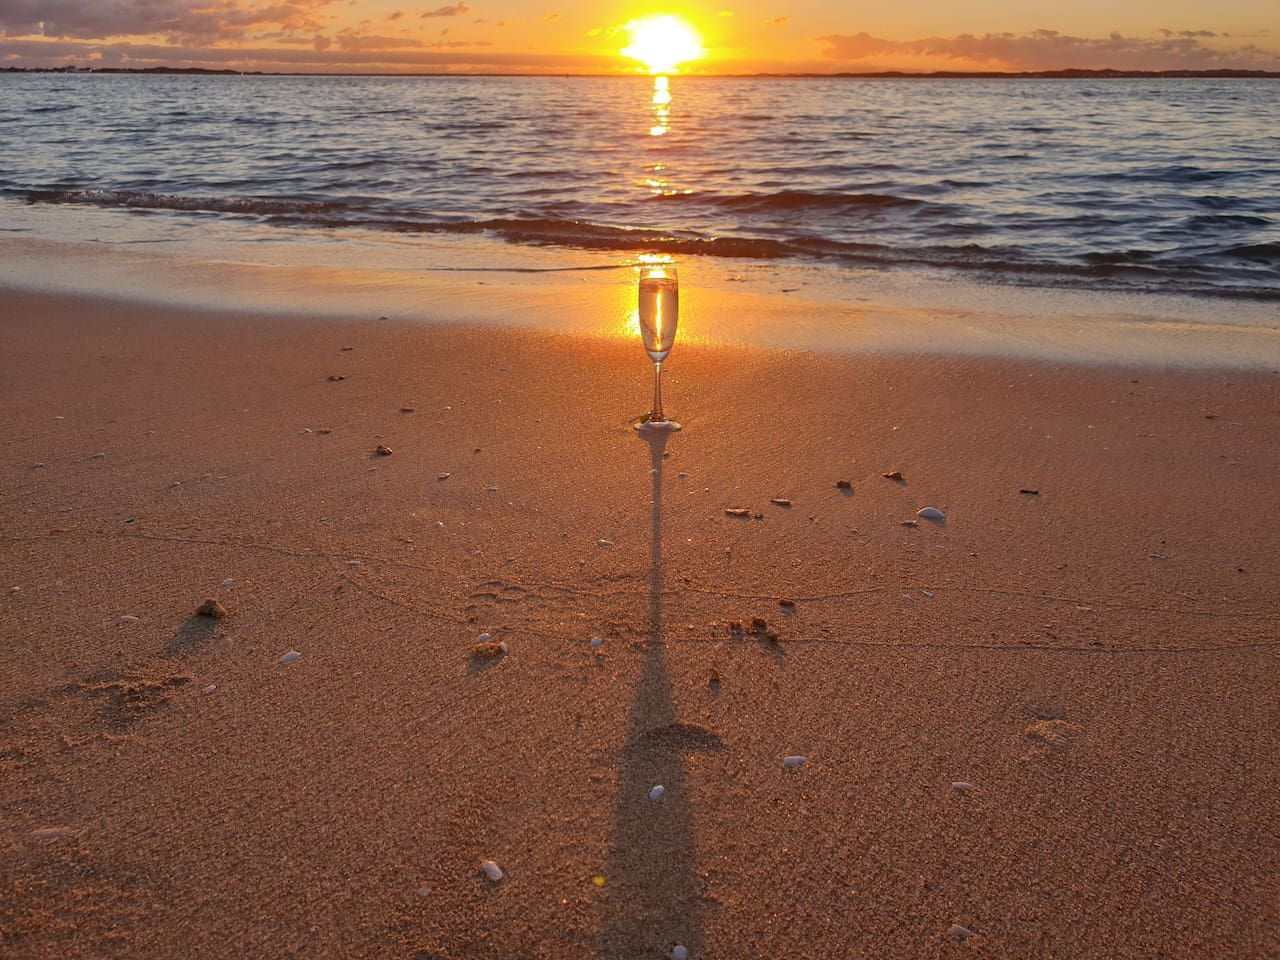 What will be your favourite sunset photo? We are sure you will have too many to choose from! Such a short stroll to the beach to admire stunning Indian Ocean sunsets.